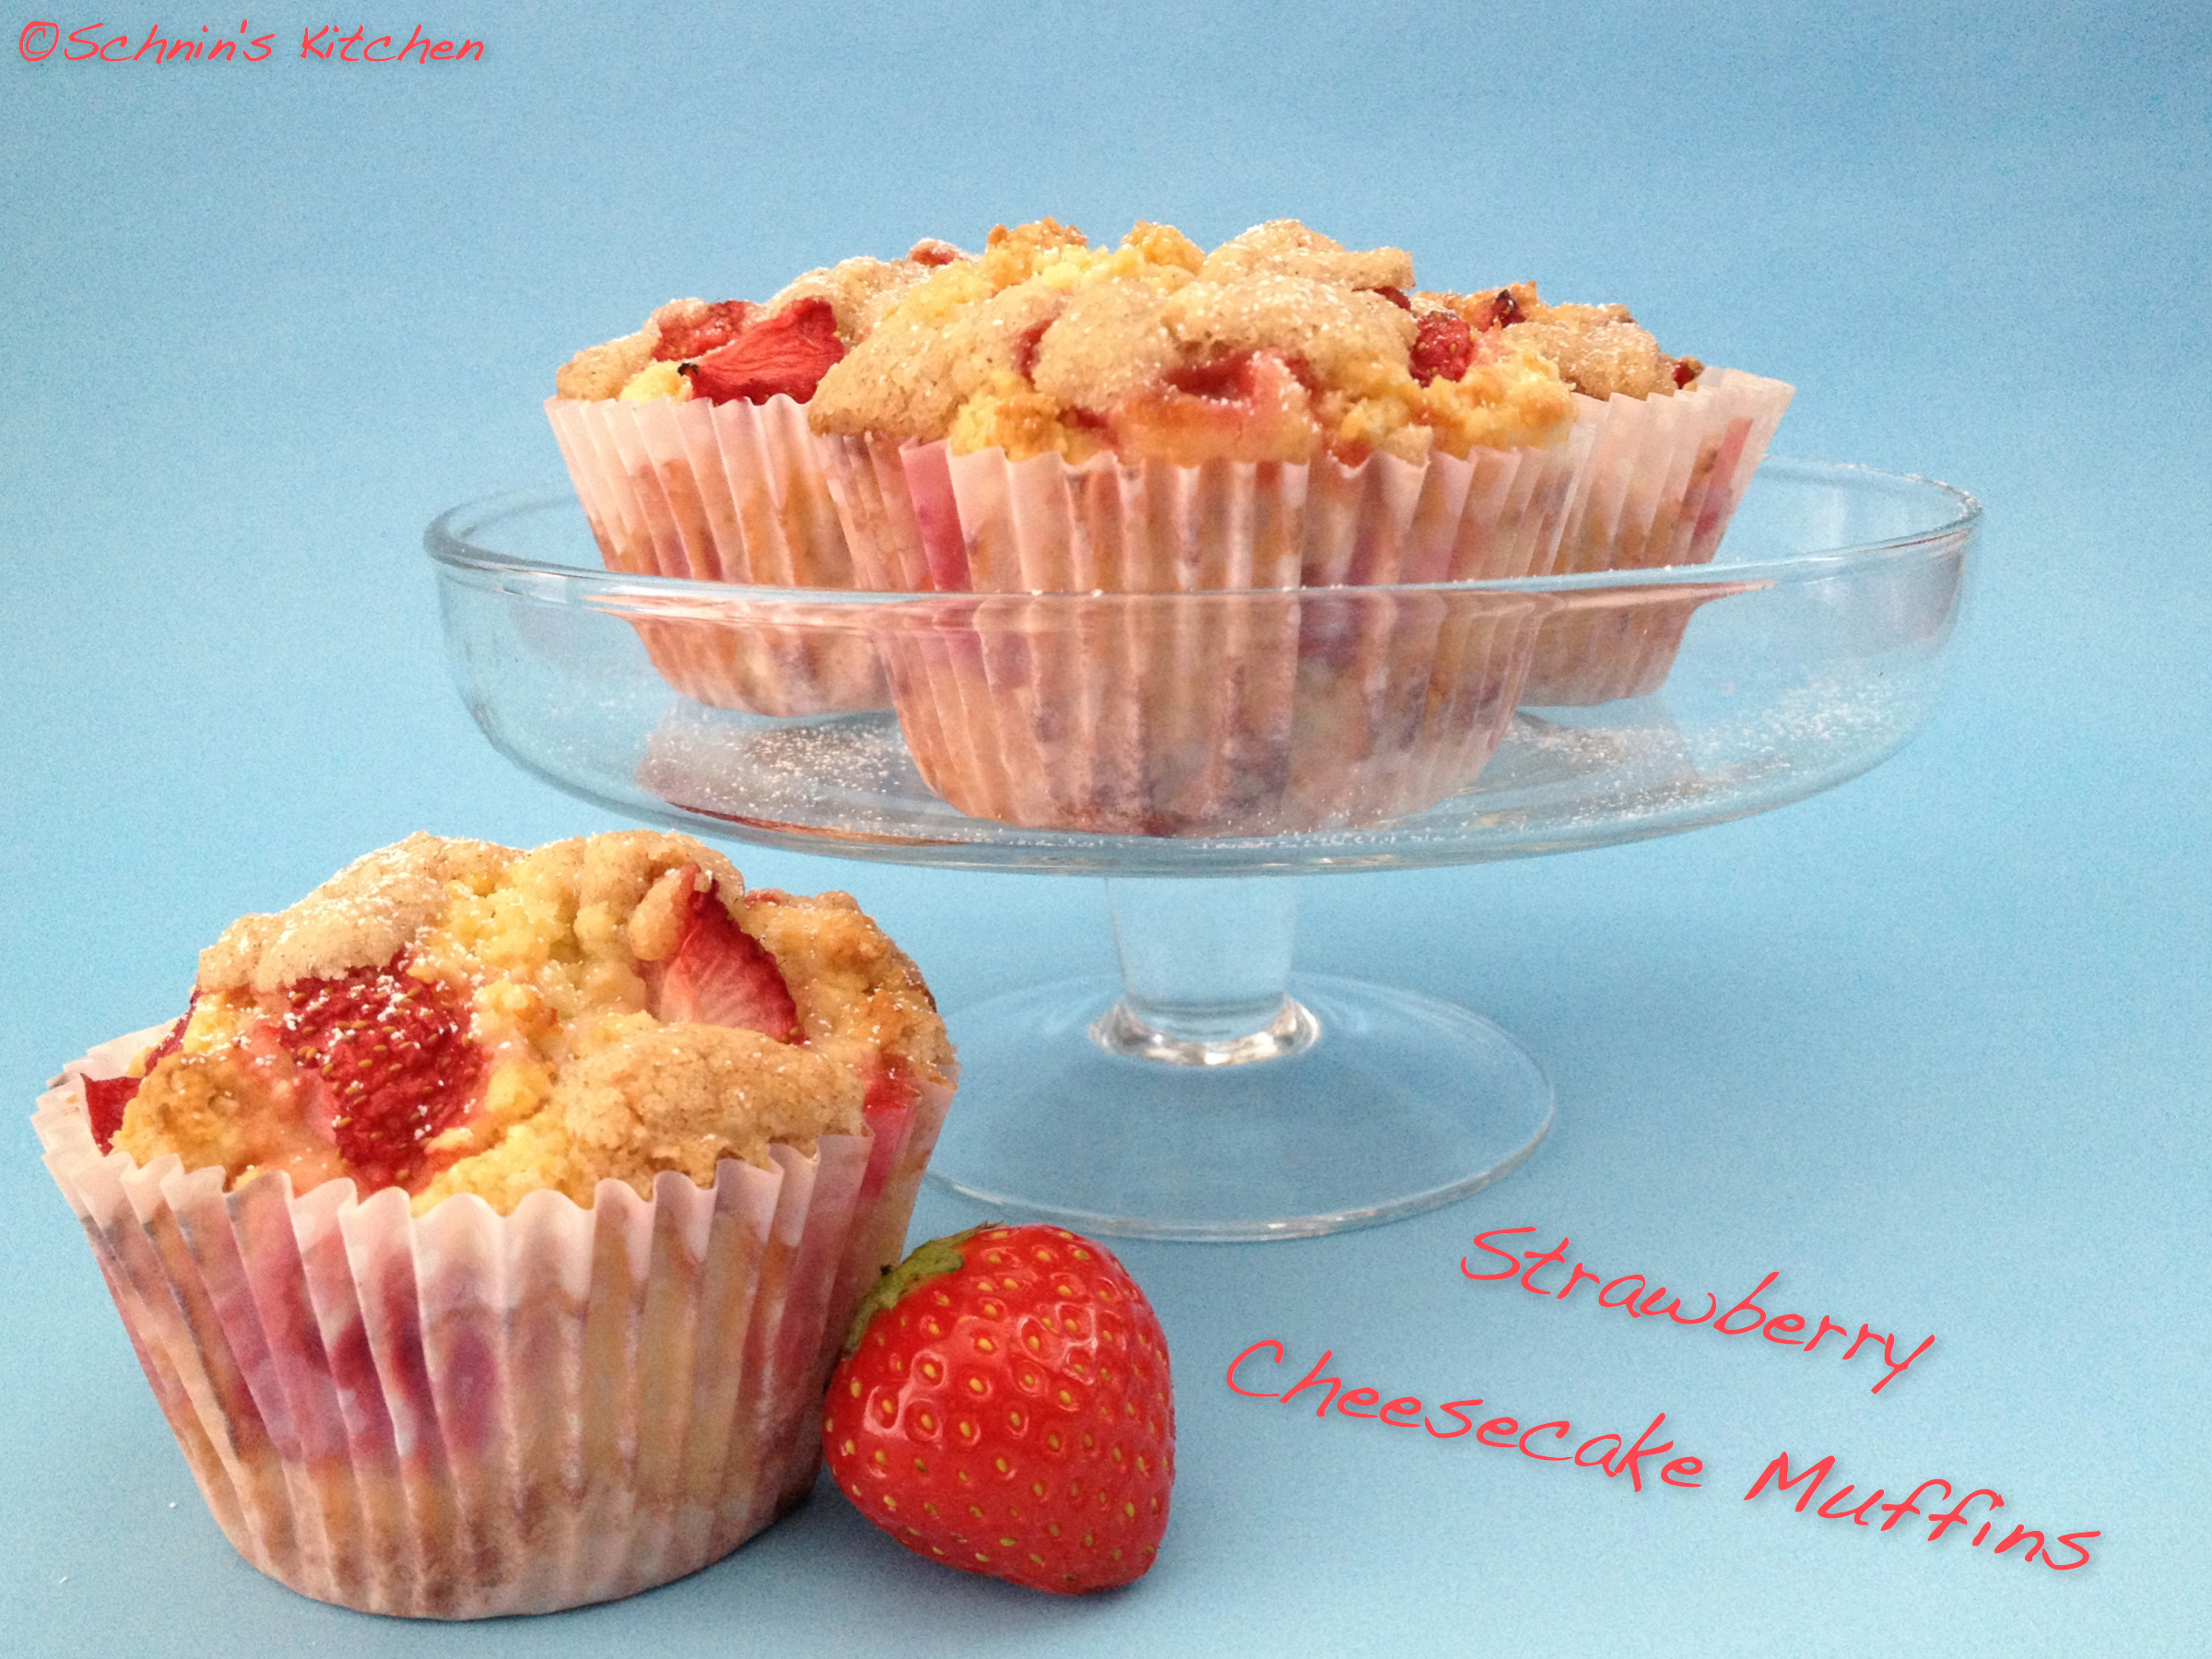 Schnin's Kitchen: Strawberry Cheesecake Muffins